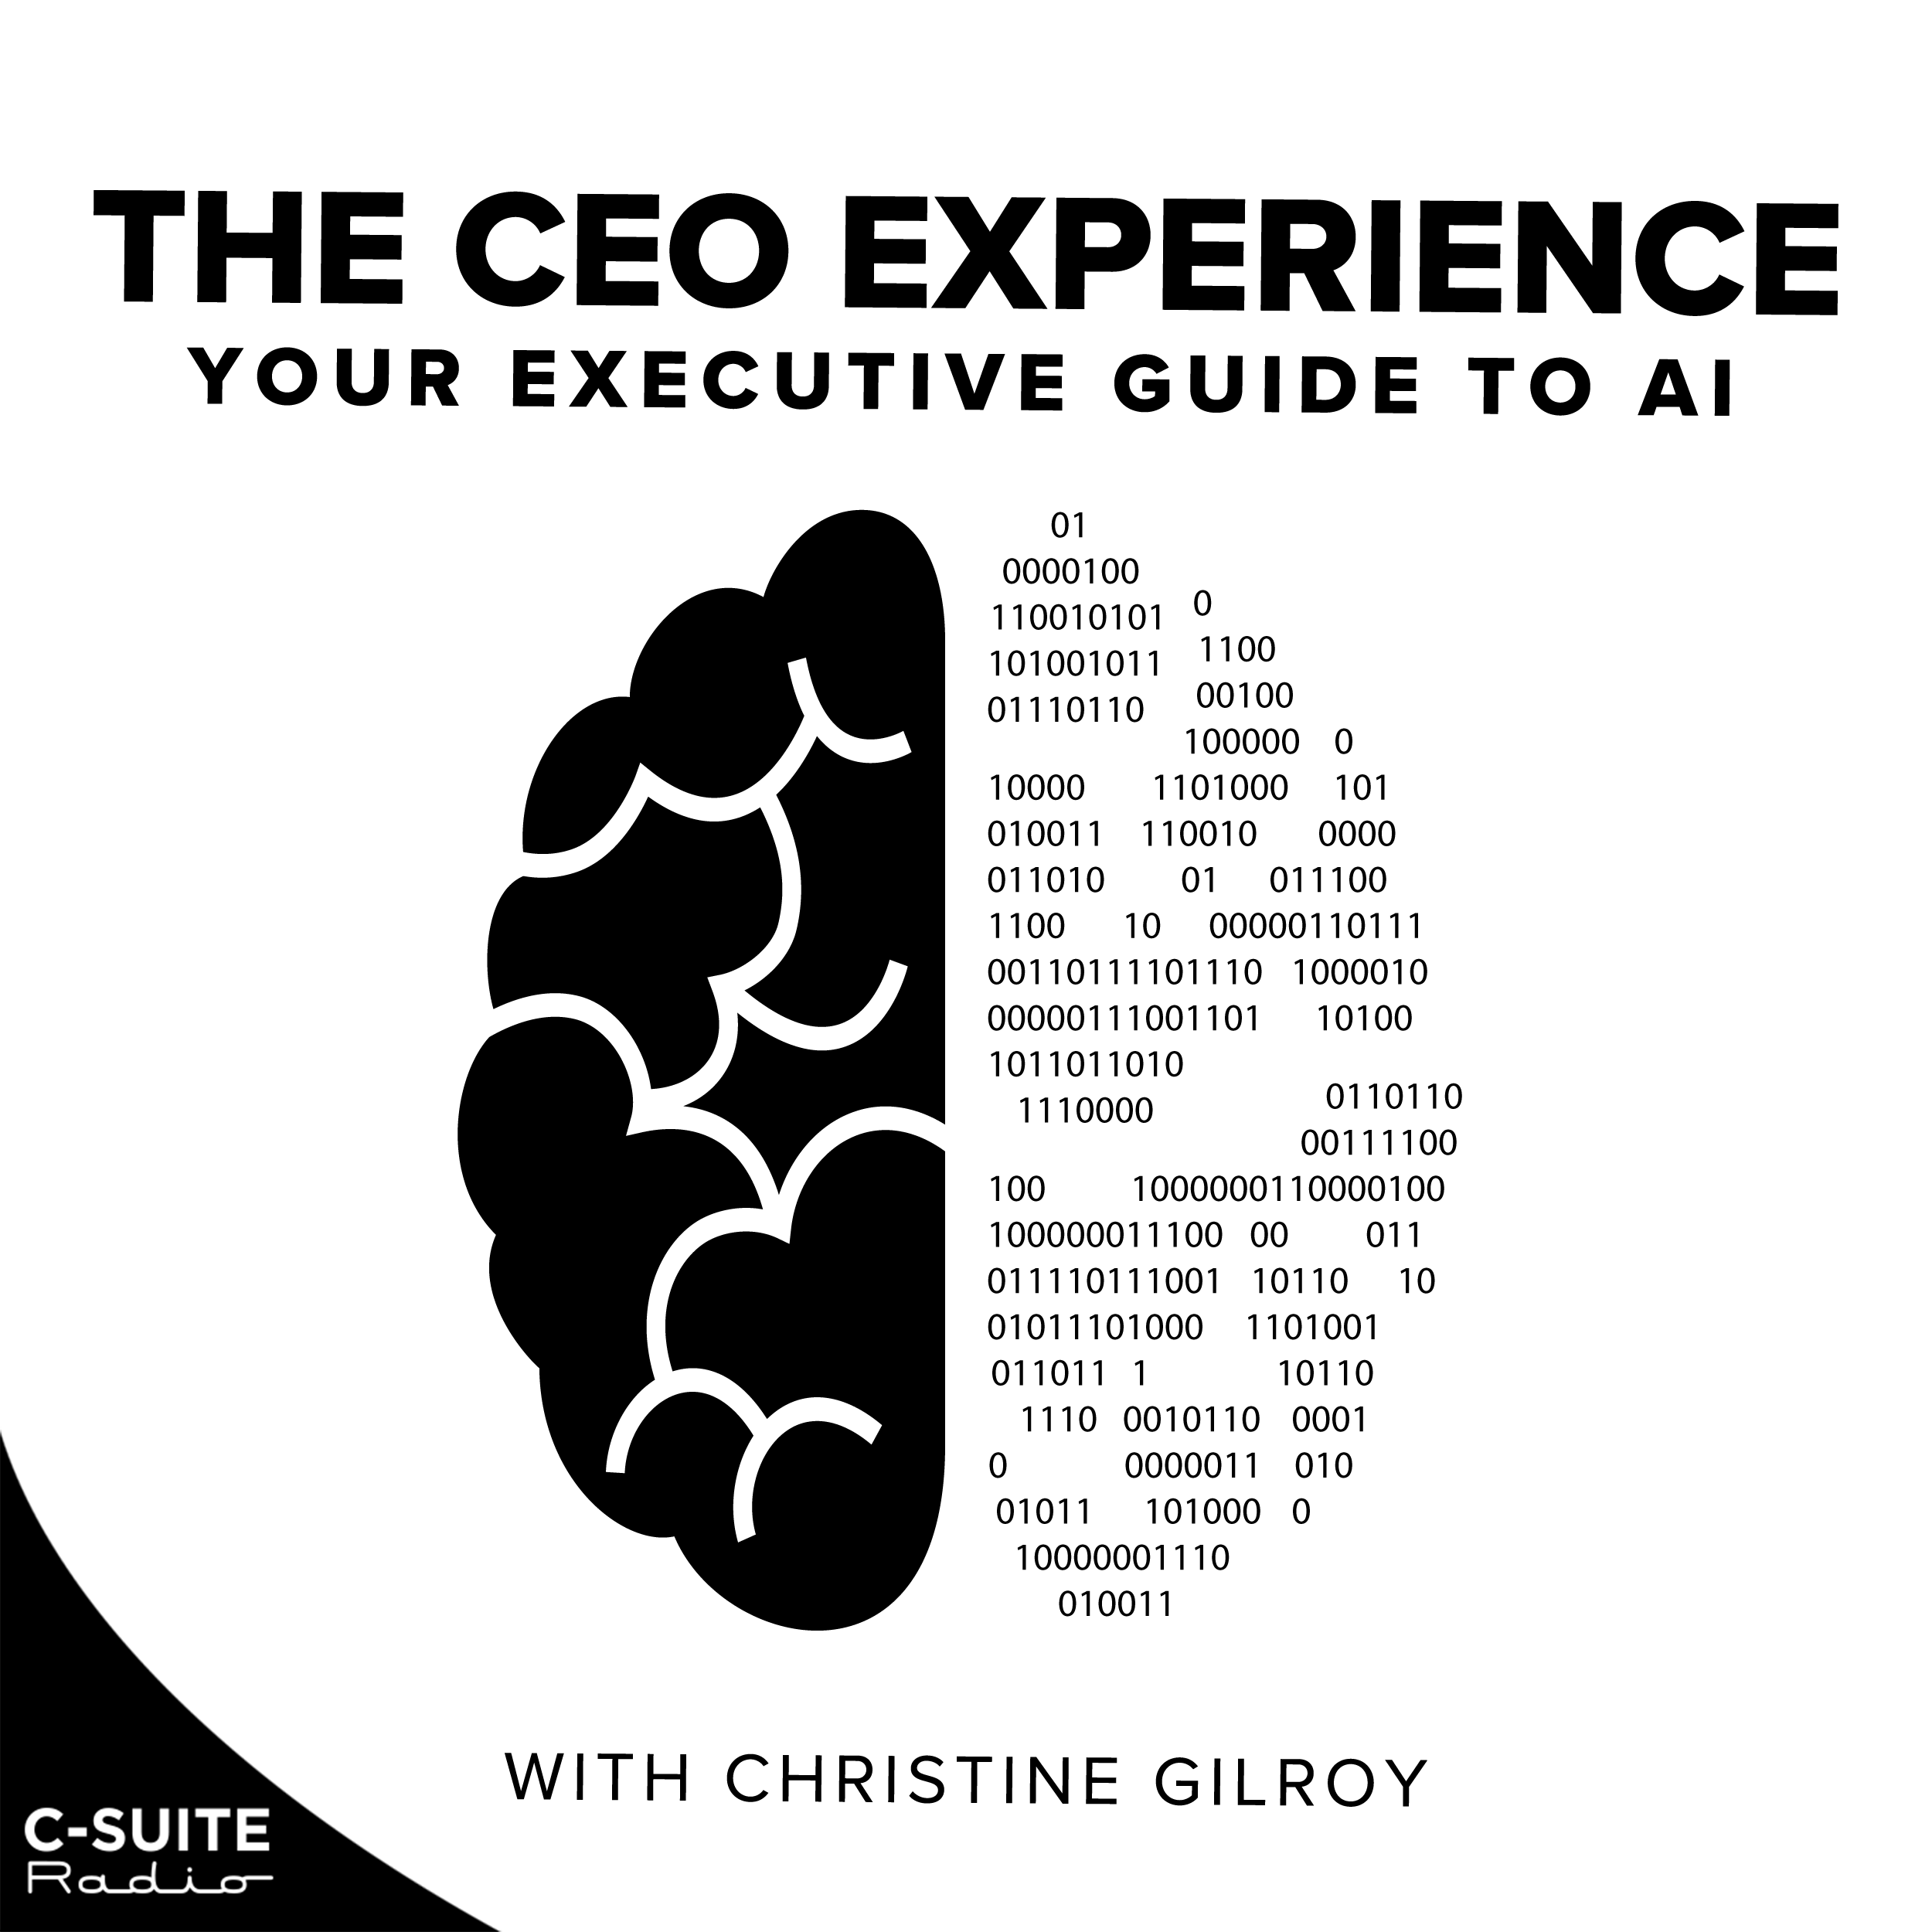 The CEO Experience: Your Executive Guide to AI